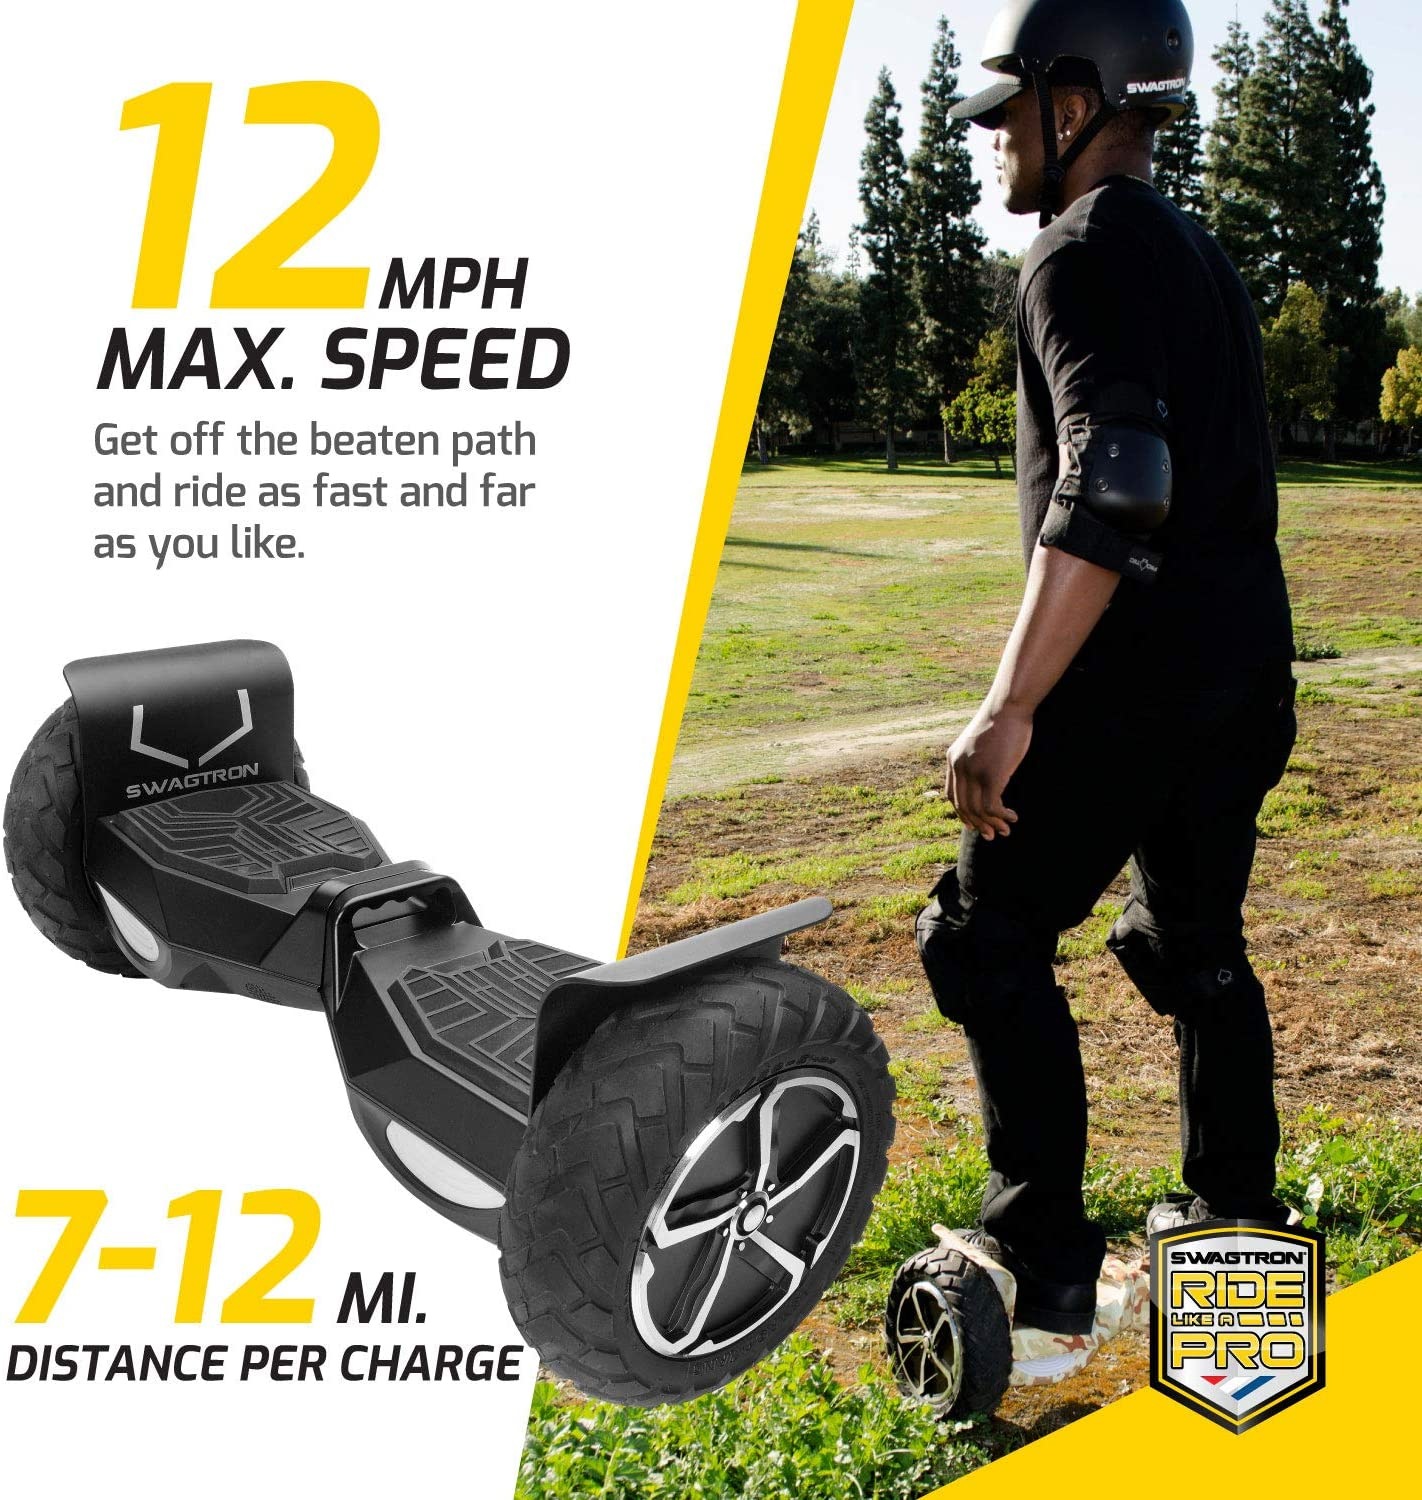 Swagtron Swagboard Outlaw T6 Off-Road Hoverboard - 4